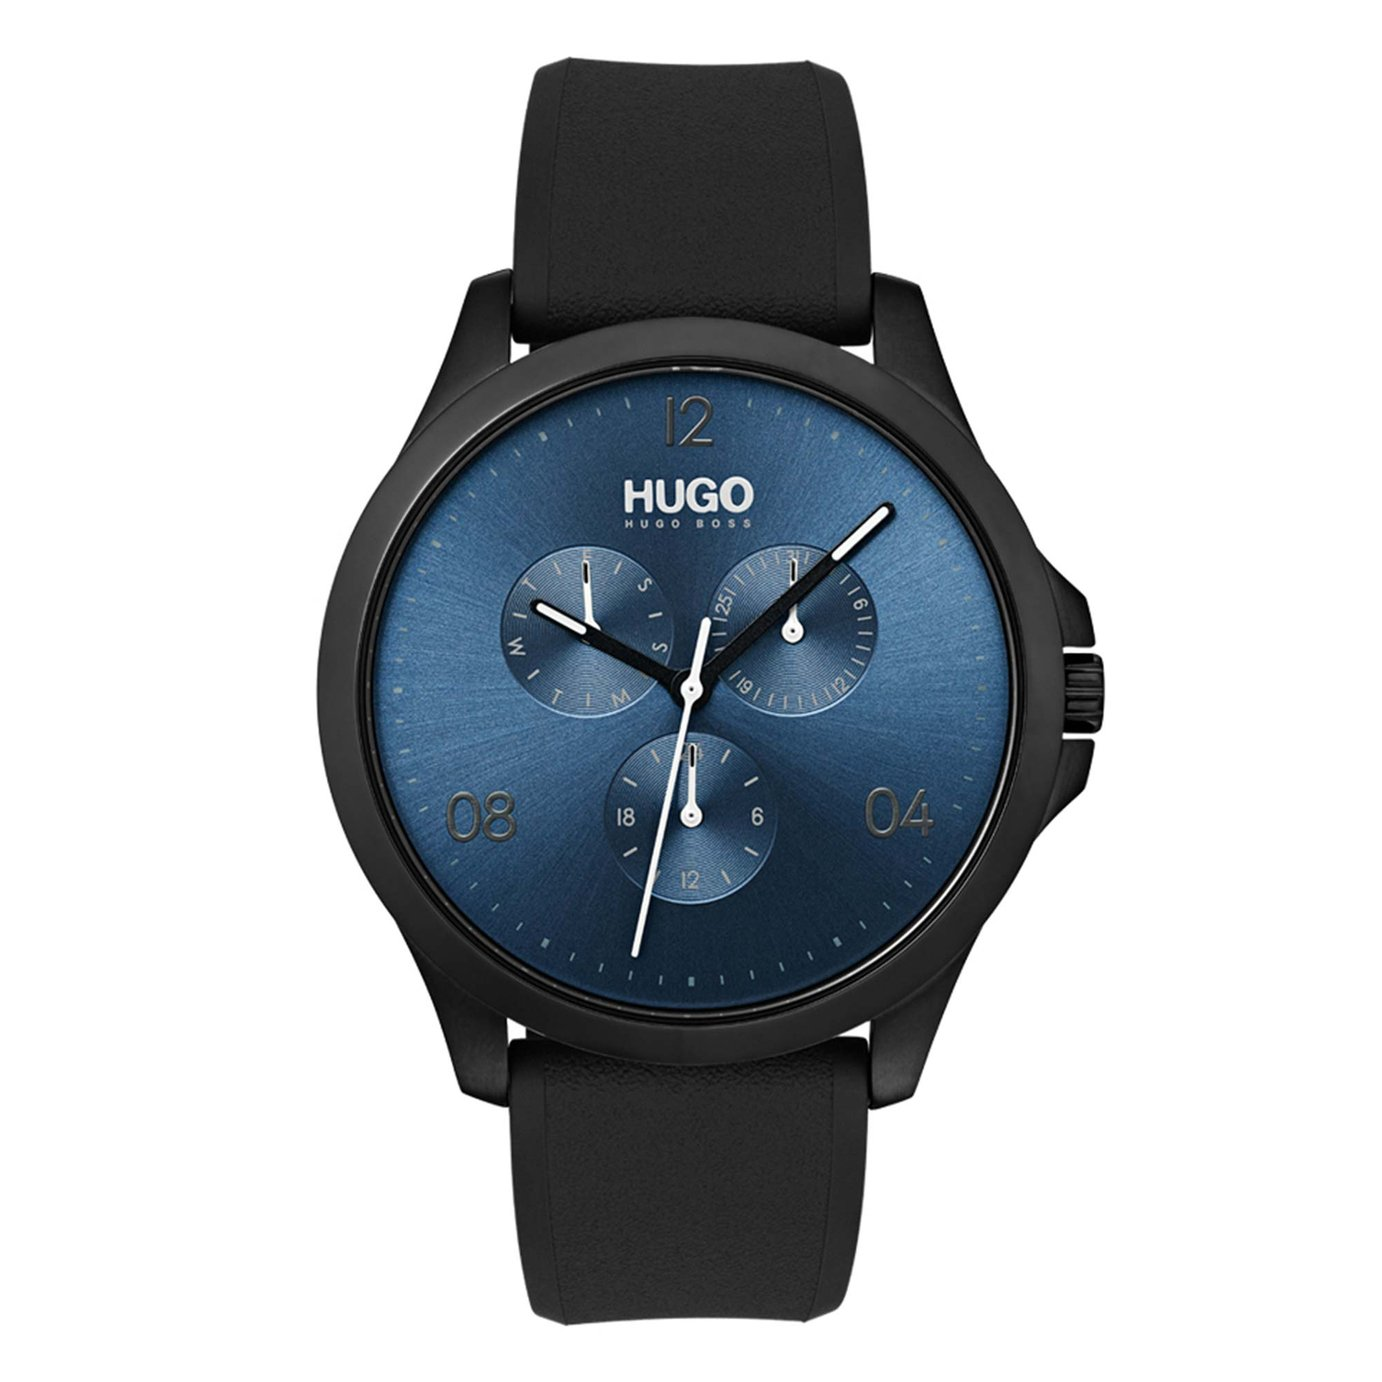 HUGO Men's Chronograph Black Silicone Strap Watch